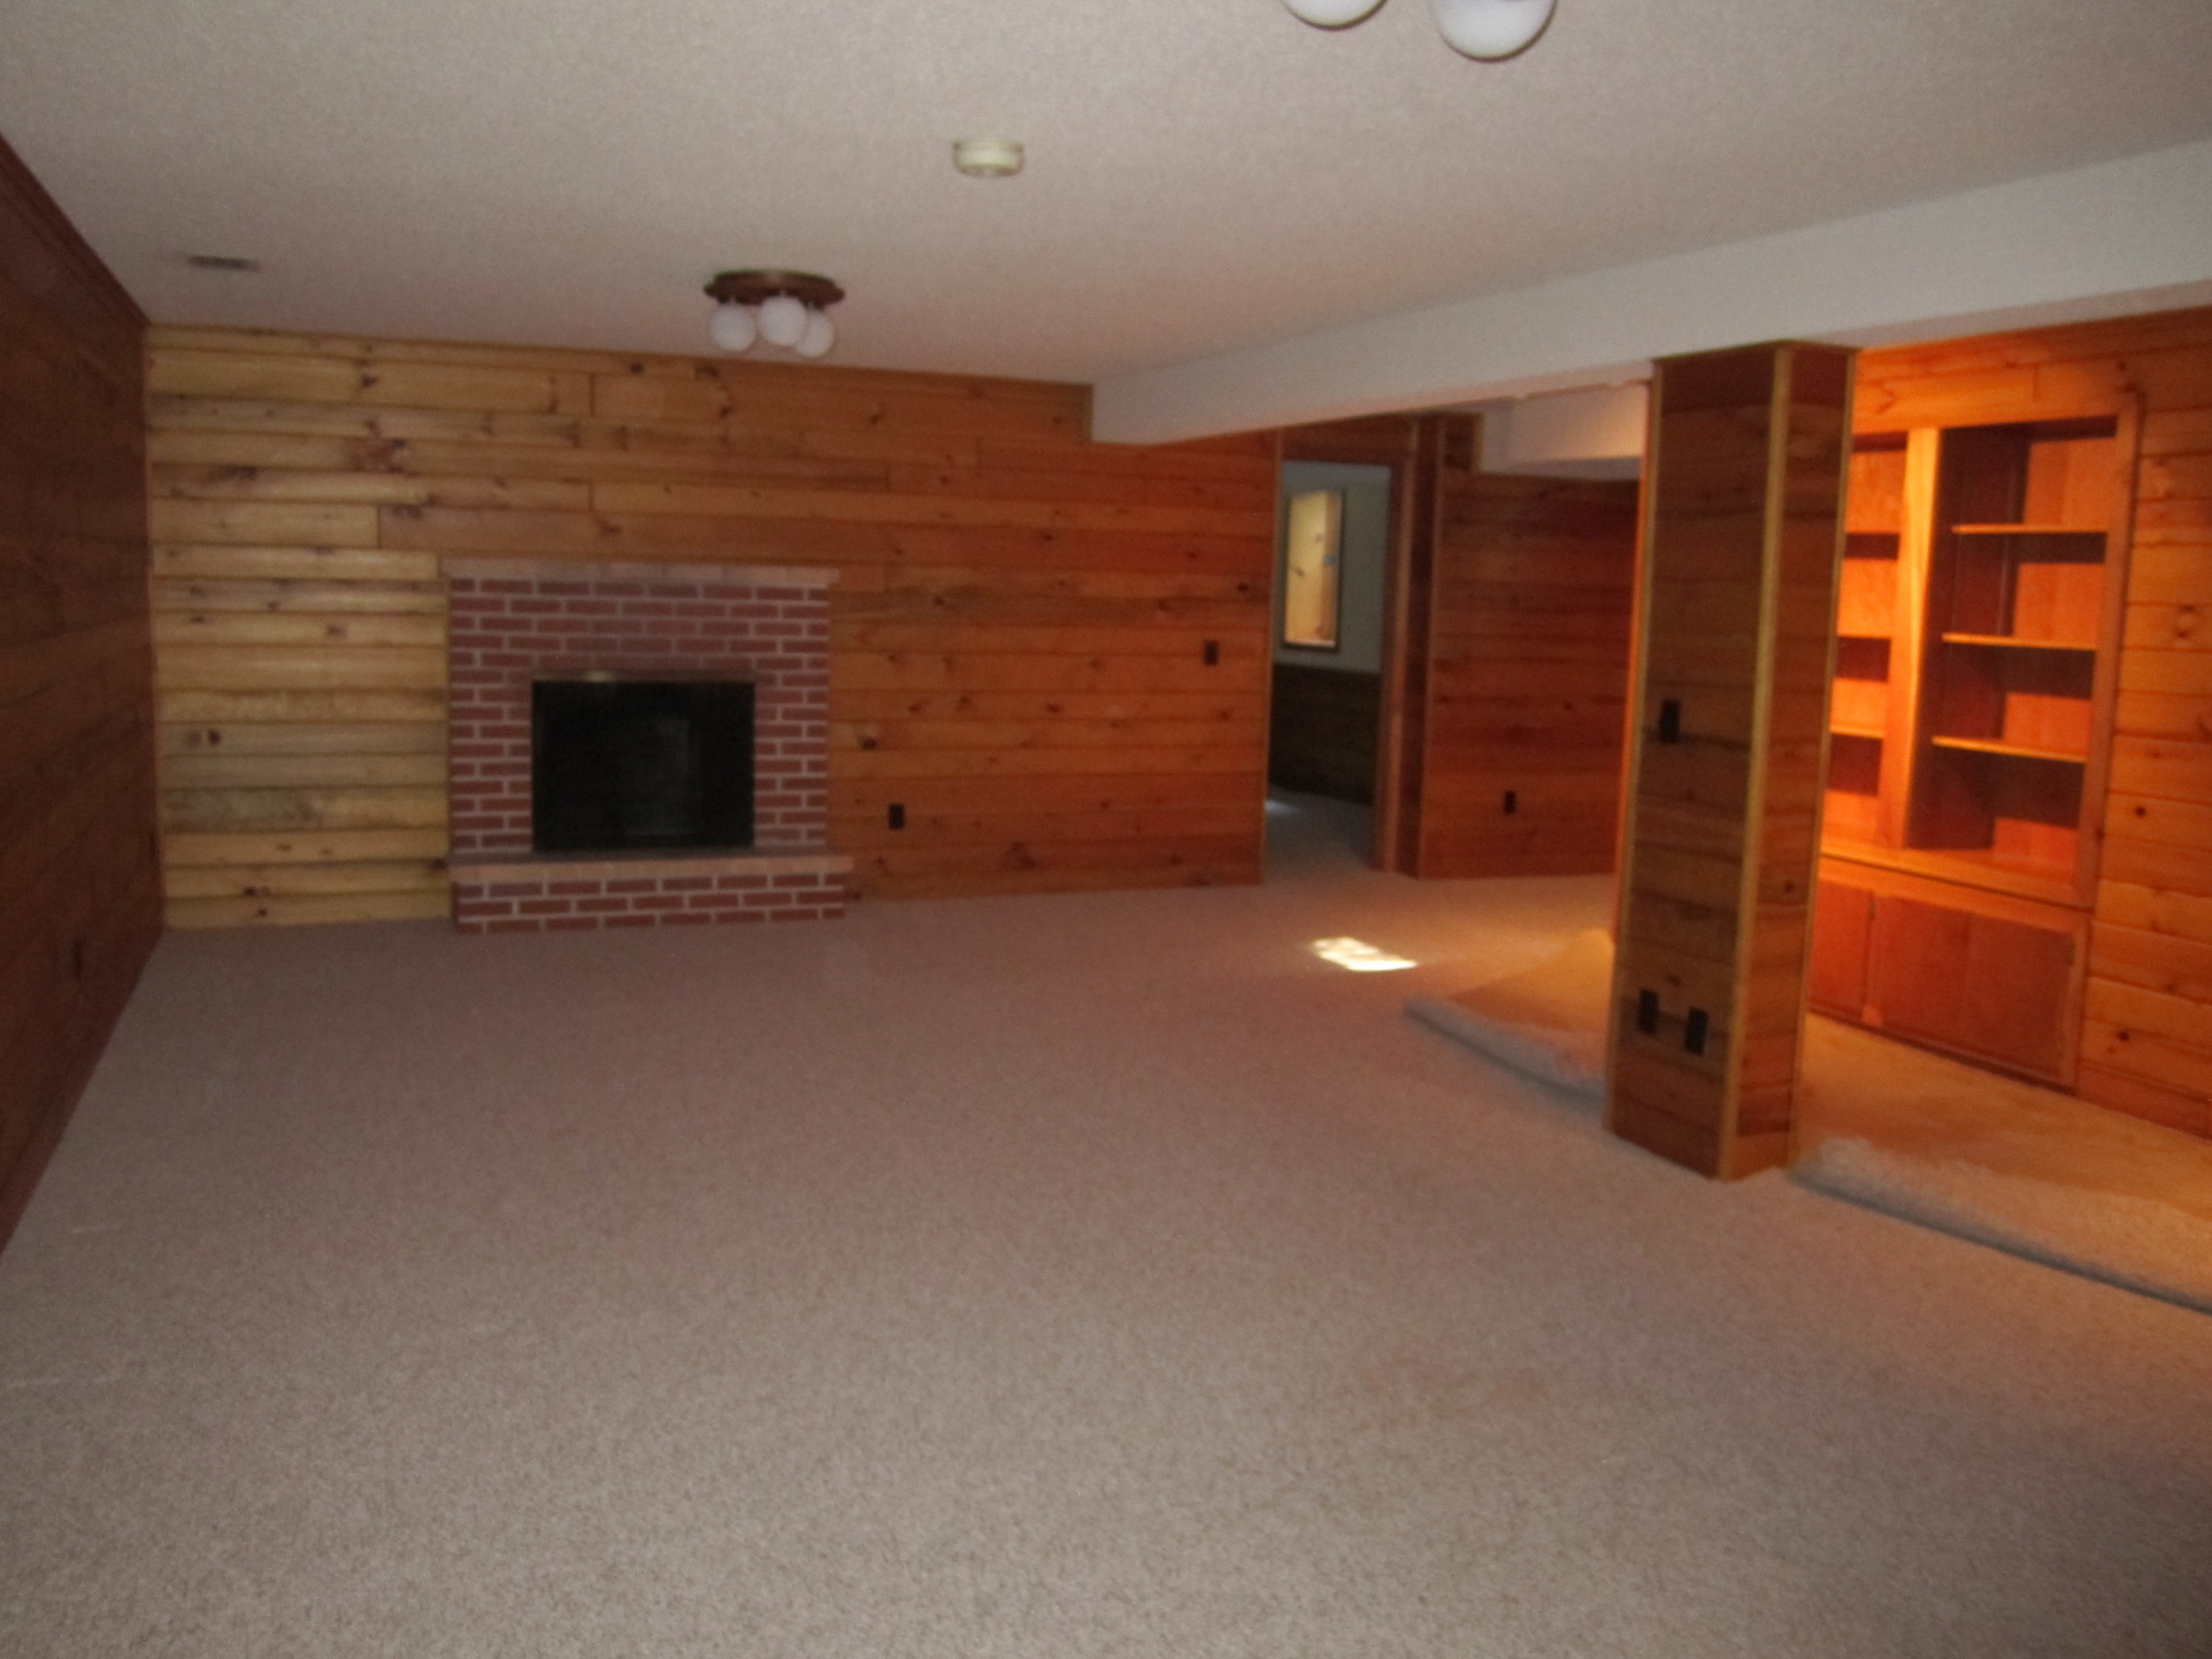 6820Oaklawnlowerlevel-before.JPG